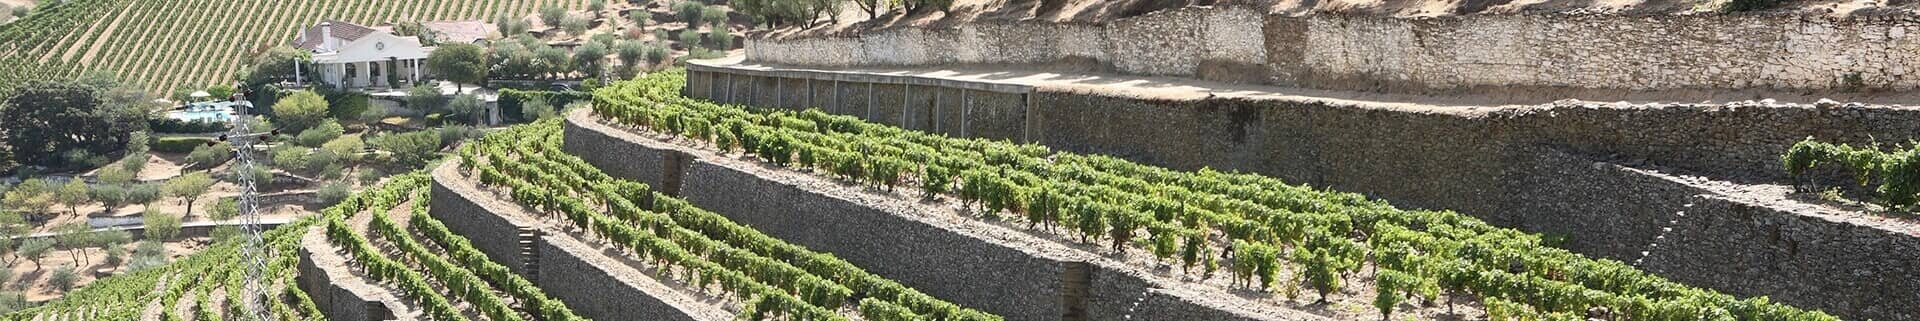 The old walled terraces of the Vinha Velha represent the original part of the Vargellas estate and contain its oldest vines.  They have been...